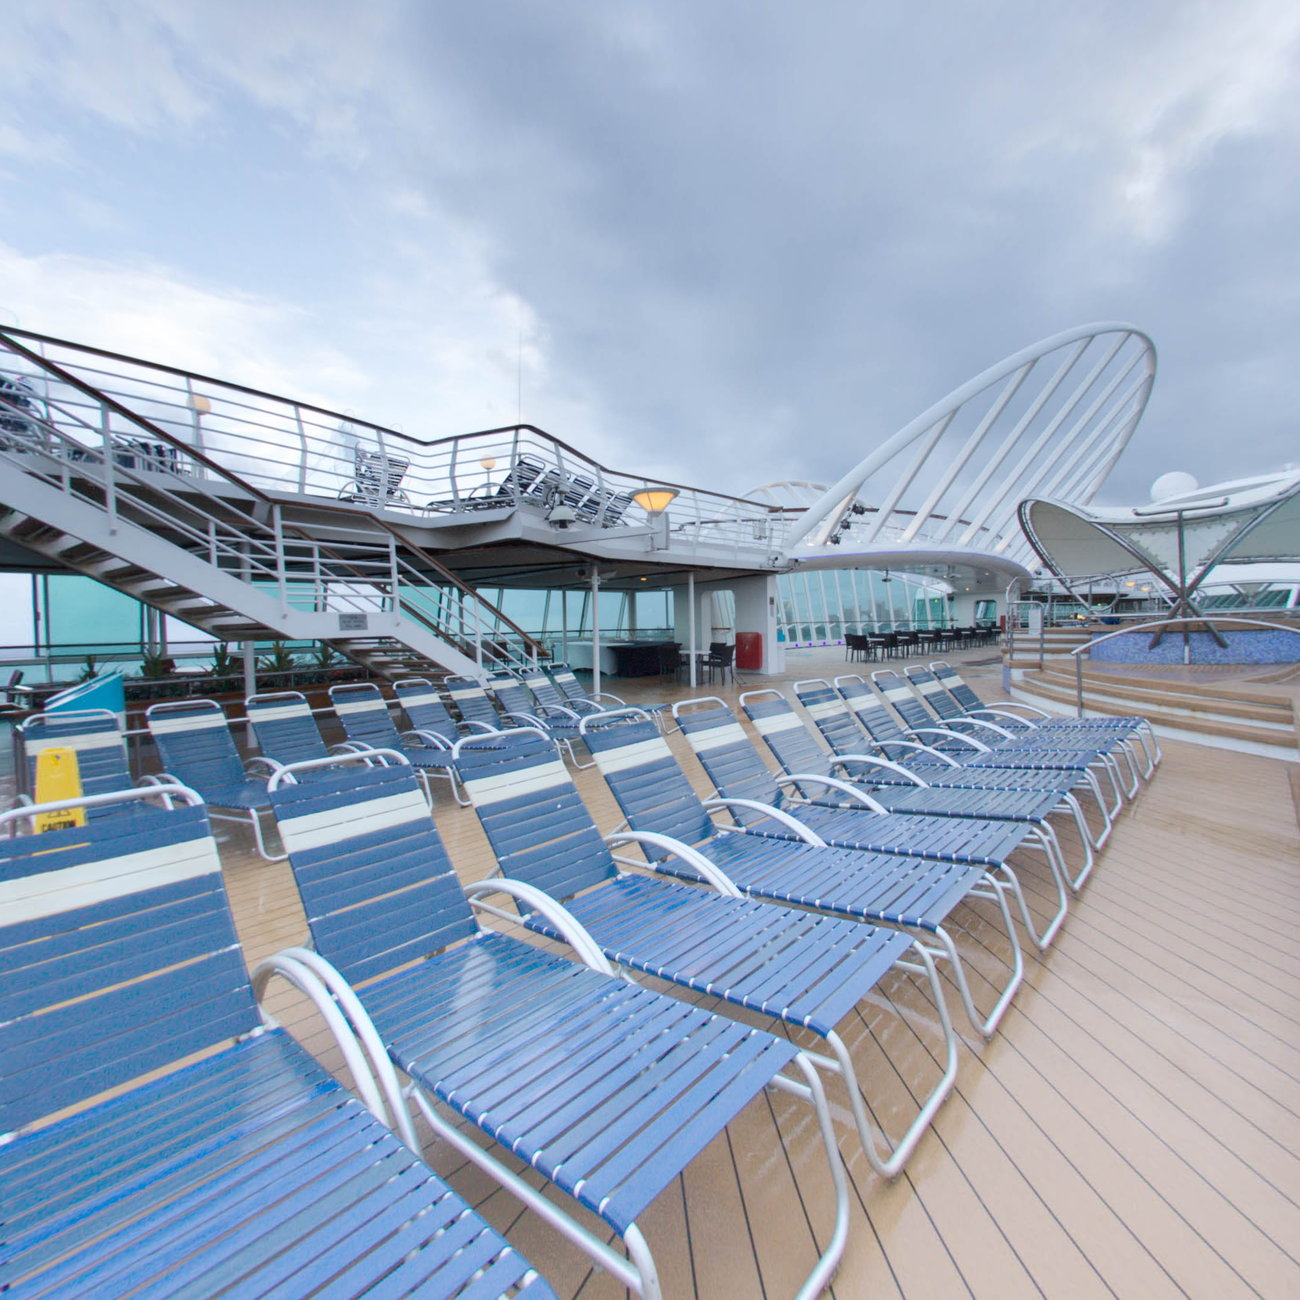 Panorama of The Main Pool on Enchantment of the Seas